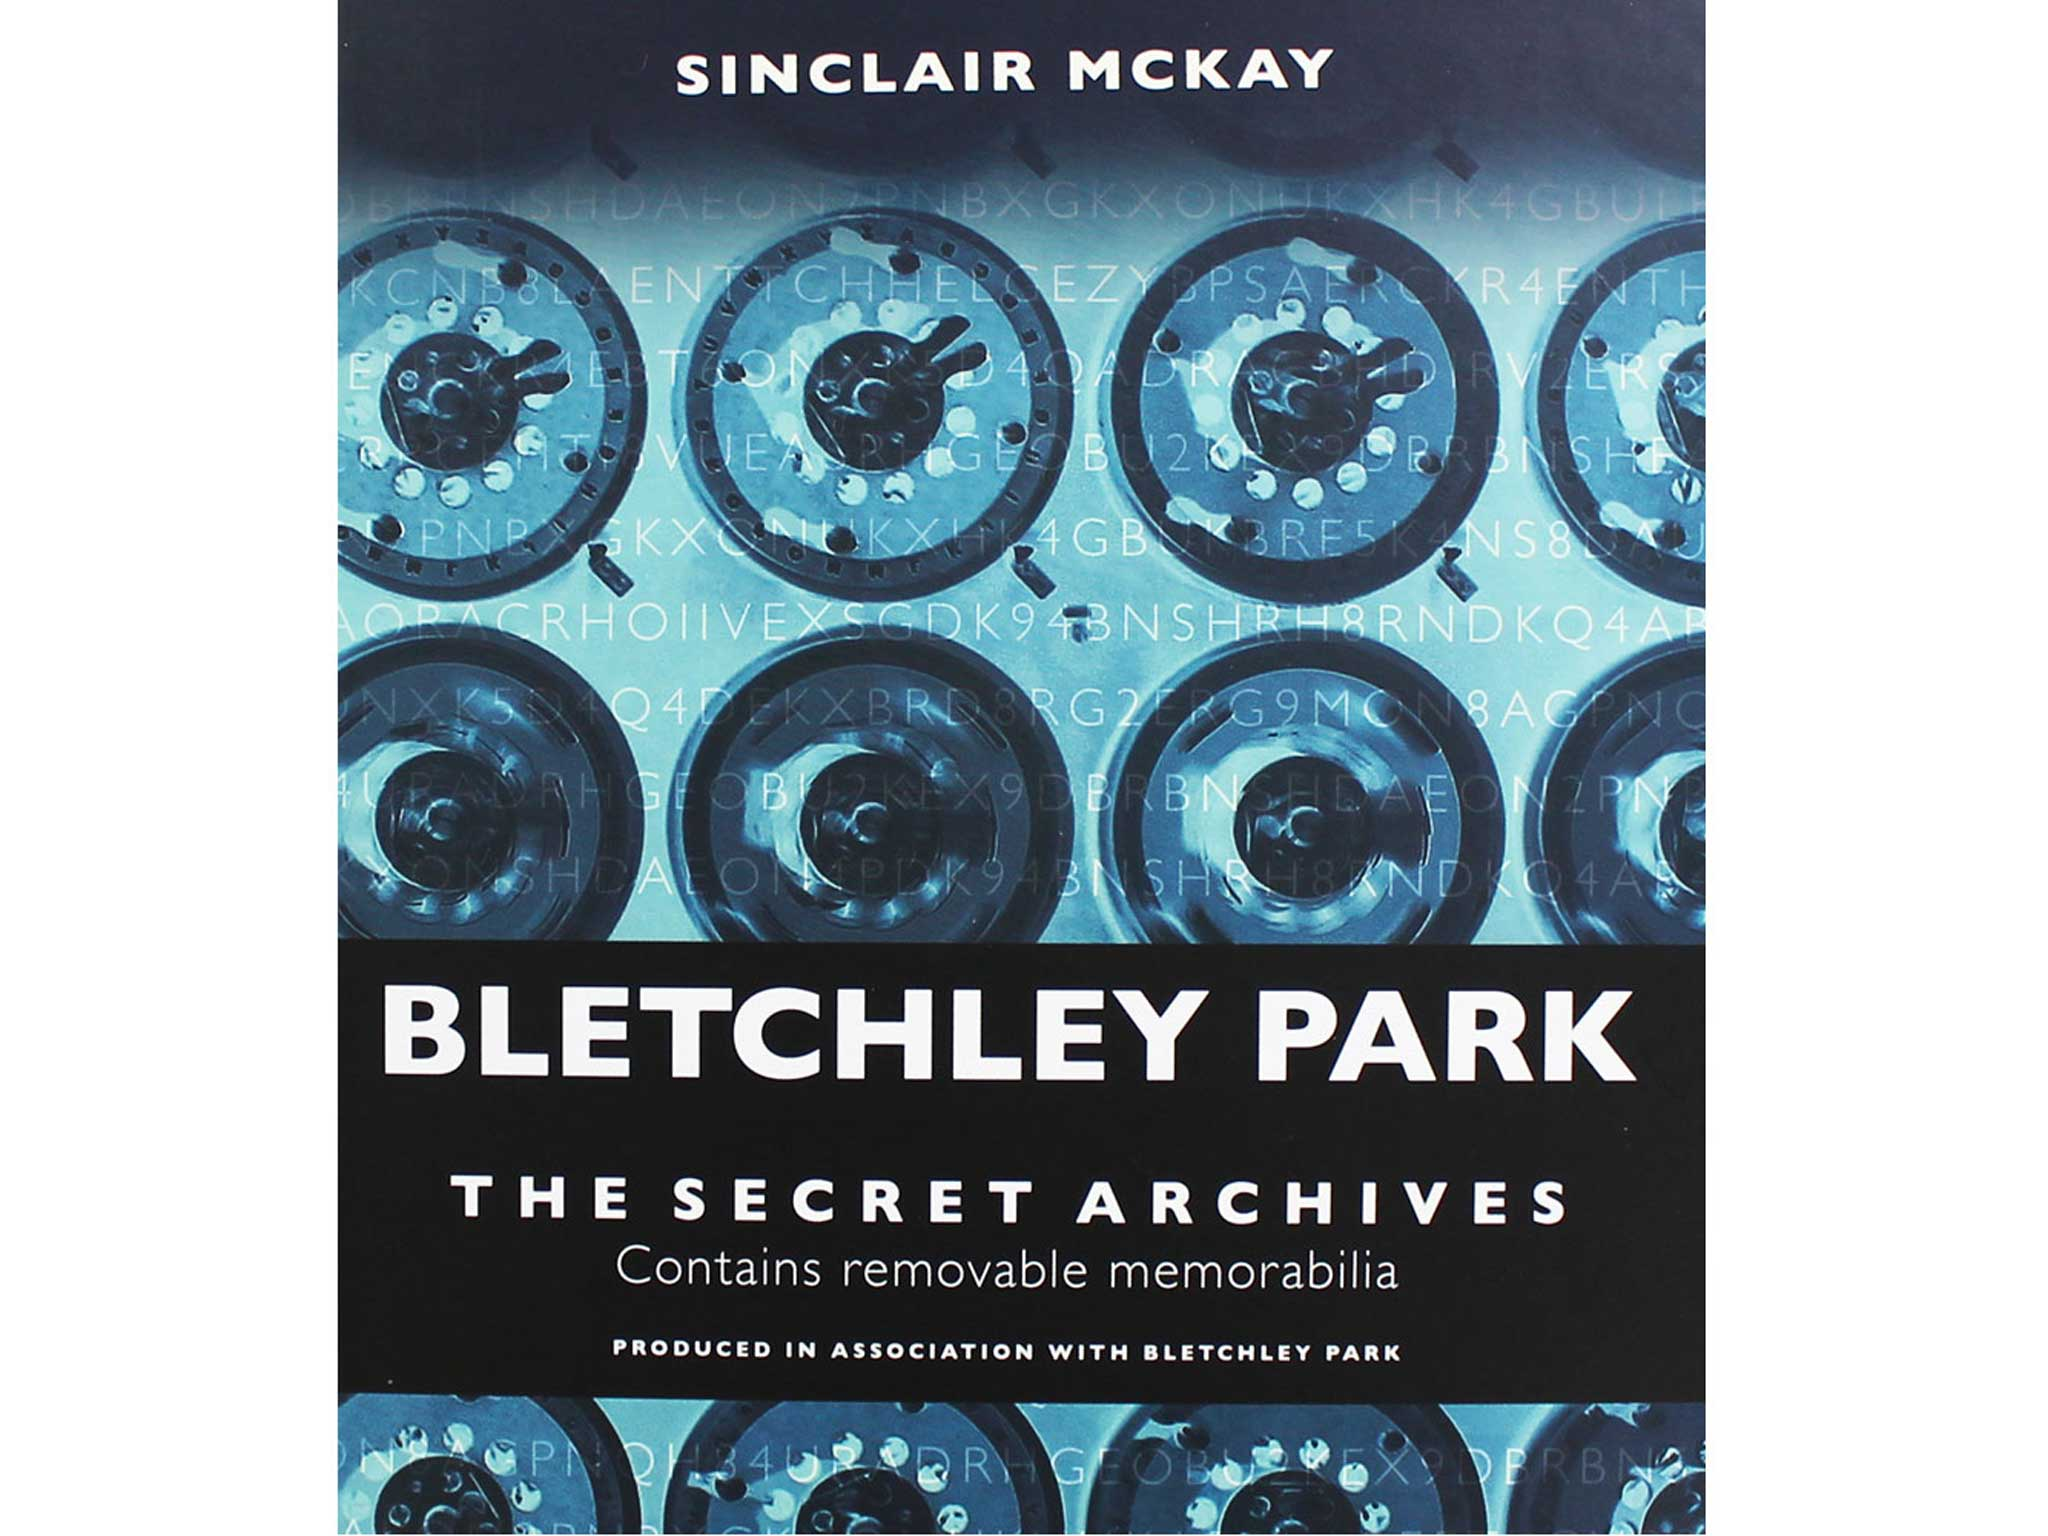 10 best spy books | The Independent